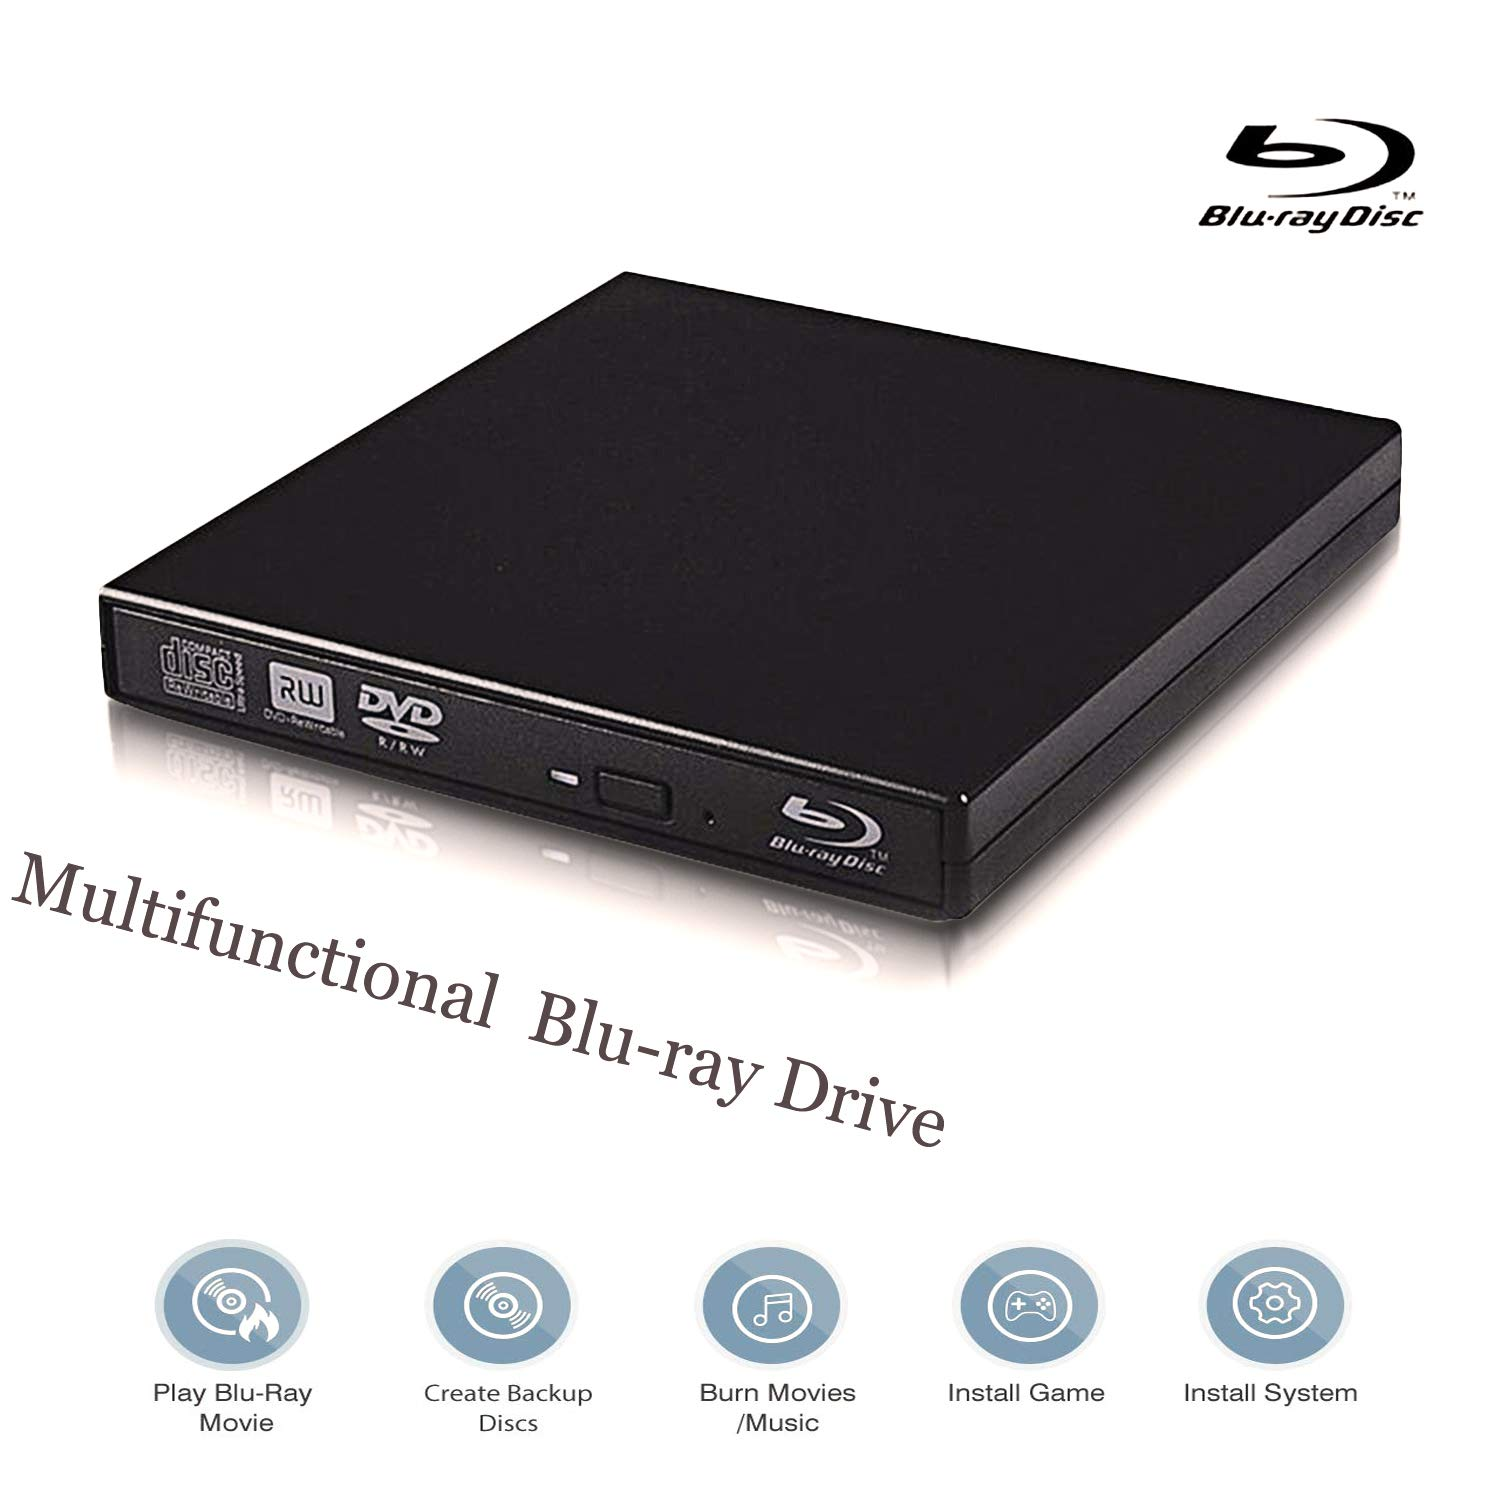 Desktop m-disc supported blu-ray burner with no pc required.